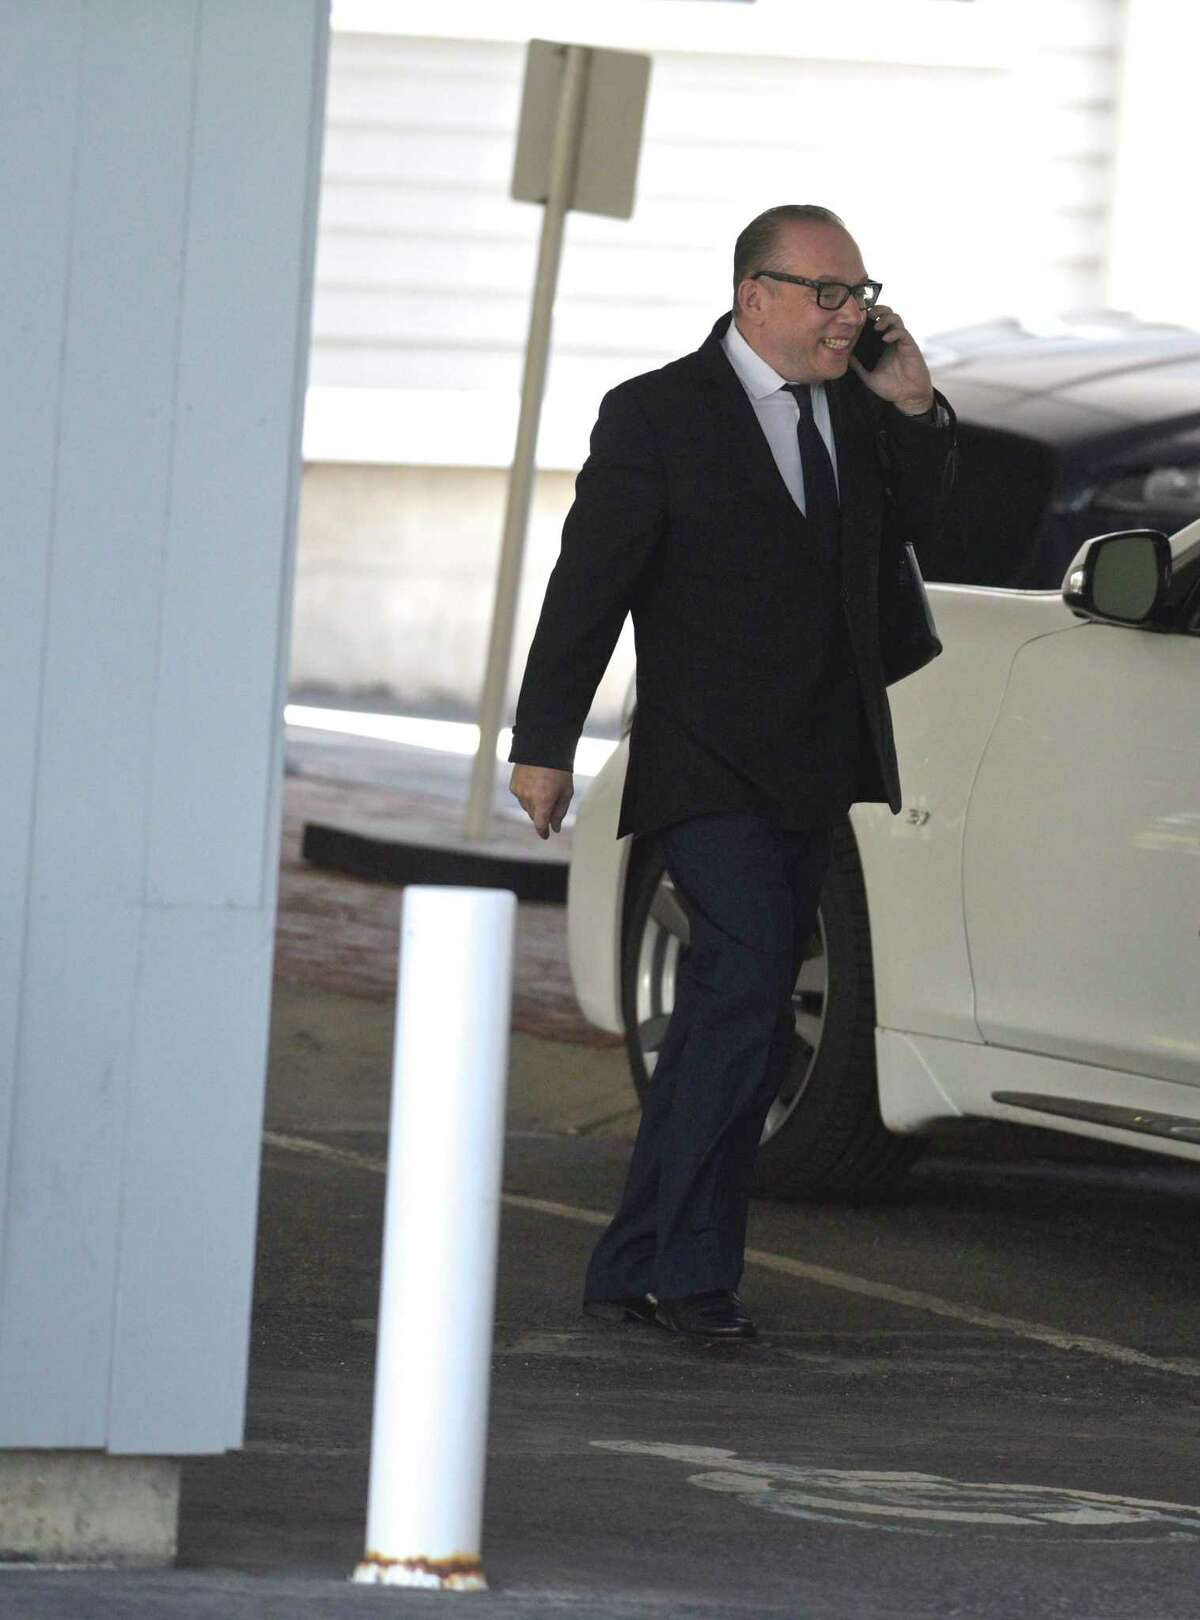 Bruno DiFabio, a celebrity chef and TV personality, leaves his attorney's Southport office after being sentenced to 30 days in prison on a federal tax evasion charge during a virtual hearing on Thursday.